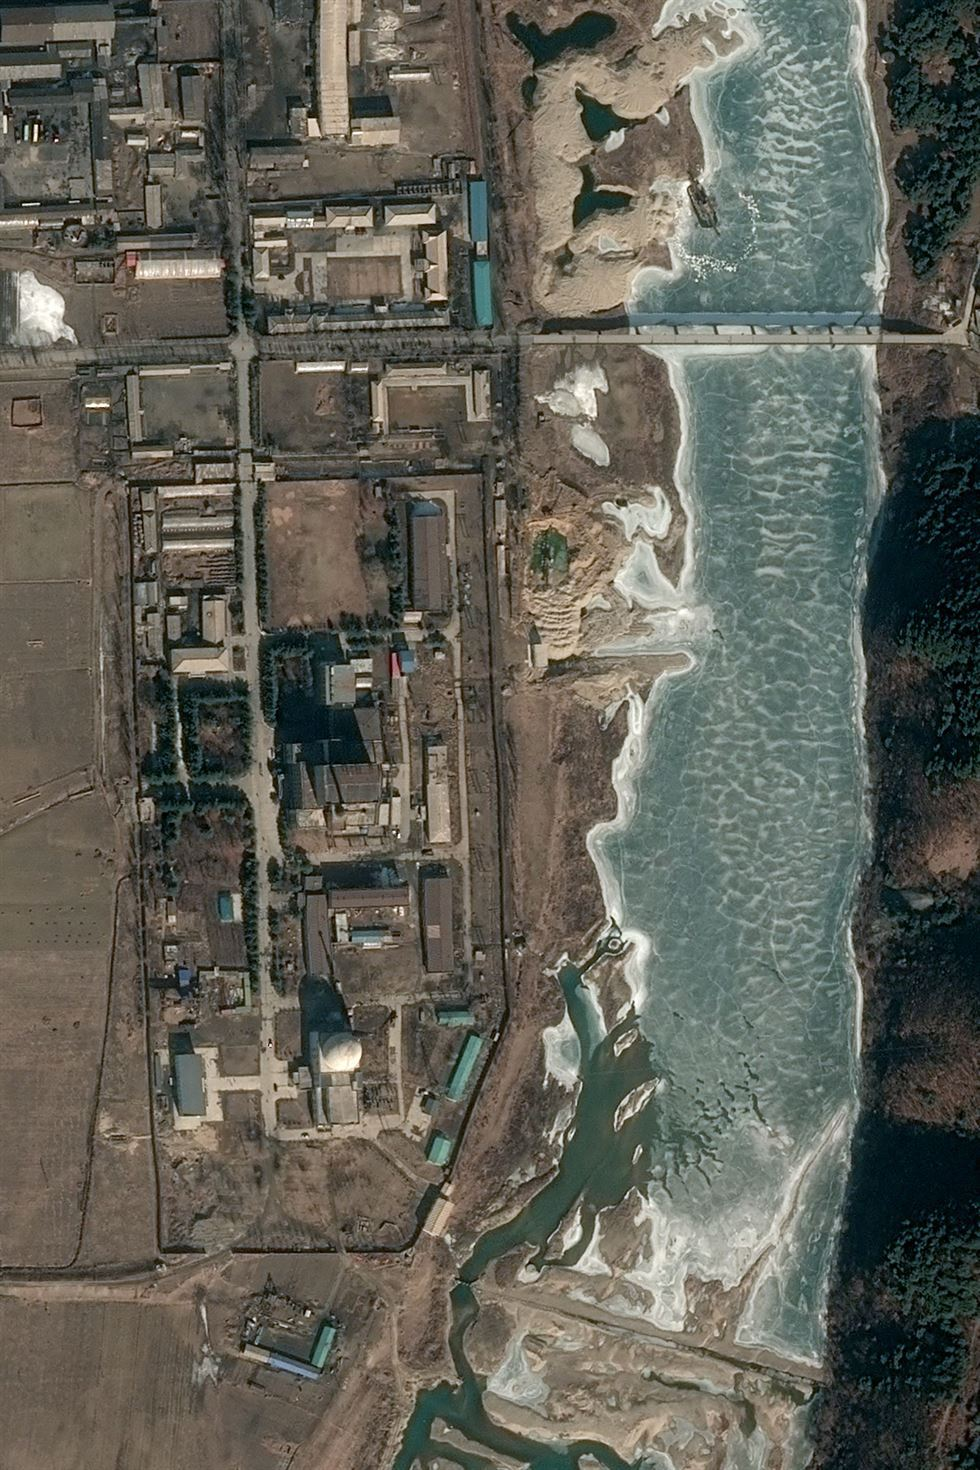 This handout satellite image taken on Feb. 21 and released to AFP by Pleiades, Cnes 2019, Distribution Airbus DS on Feb. 28 shows the 5 MWe reactor at North Korea's Yongbyon Nuclear Scientific Research Center showing no signs of activity. (AFP-Yonhap)